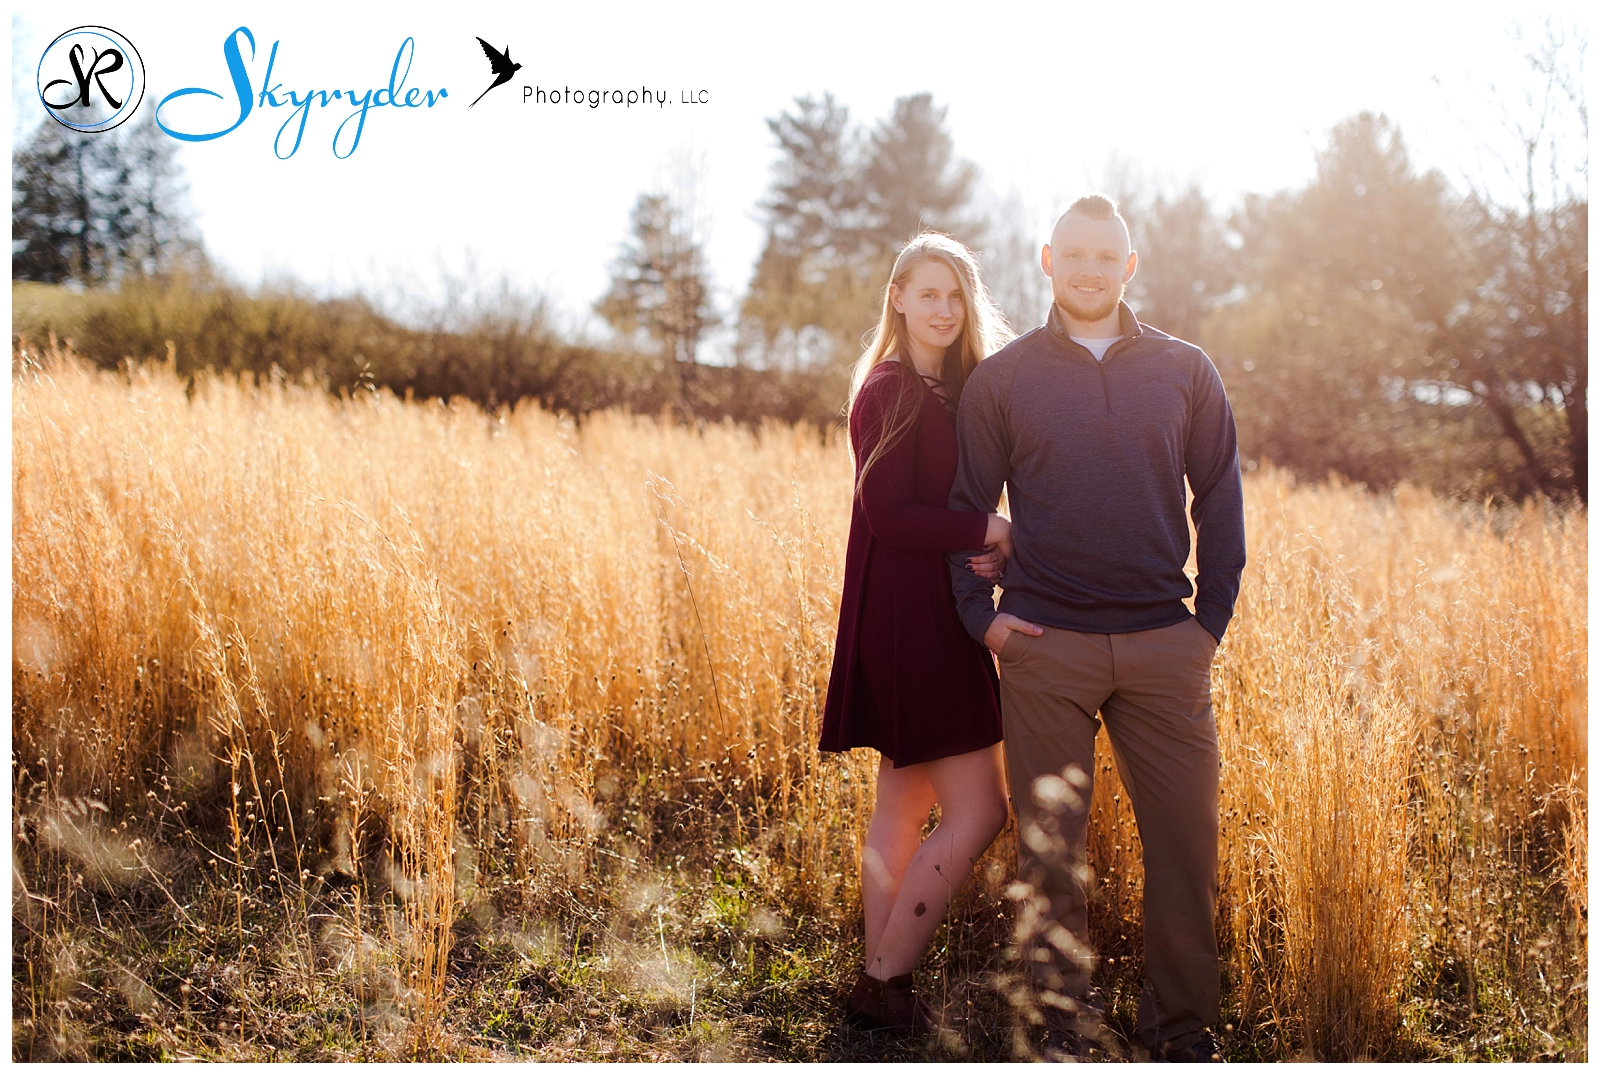 Wedding Season is Almost Here!!! | Blacksburg Wedding Photographer skyryder photography blacksburg lexington charlottesville san francisco wedding photographer